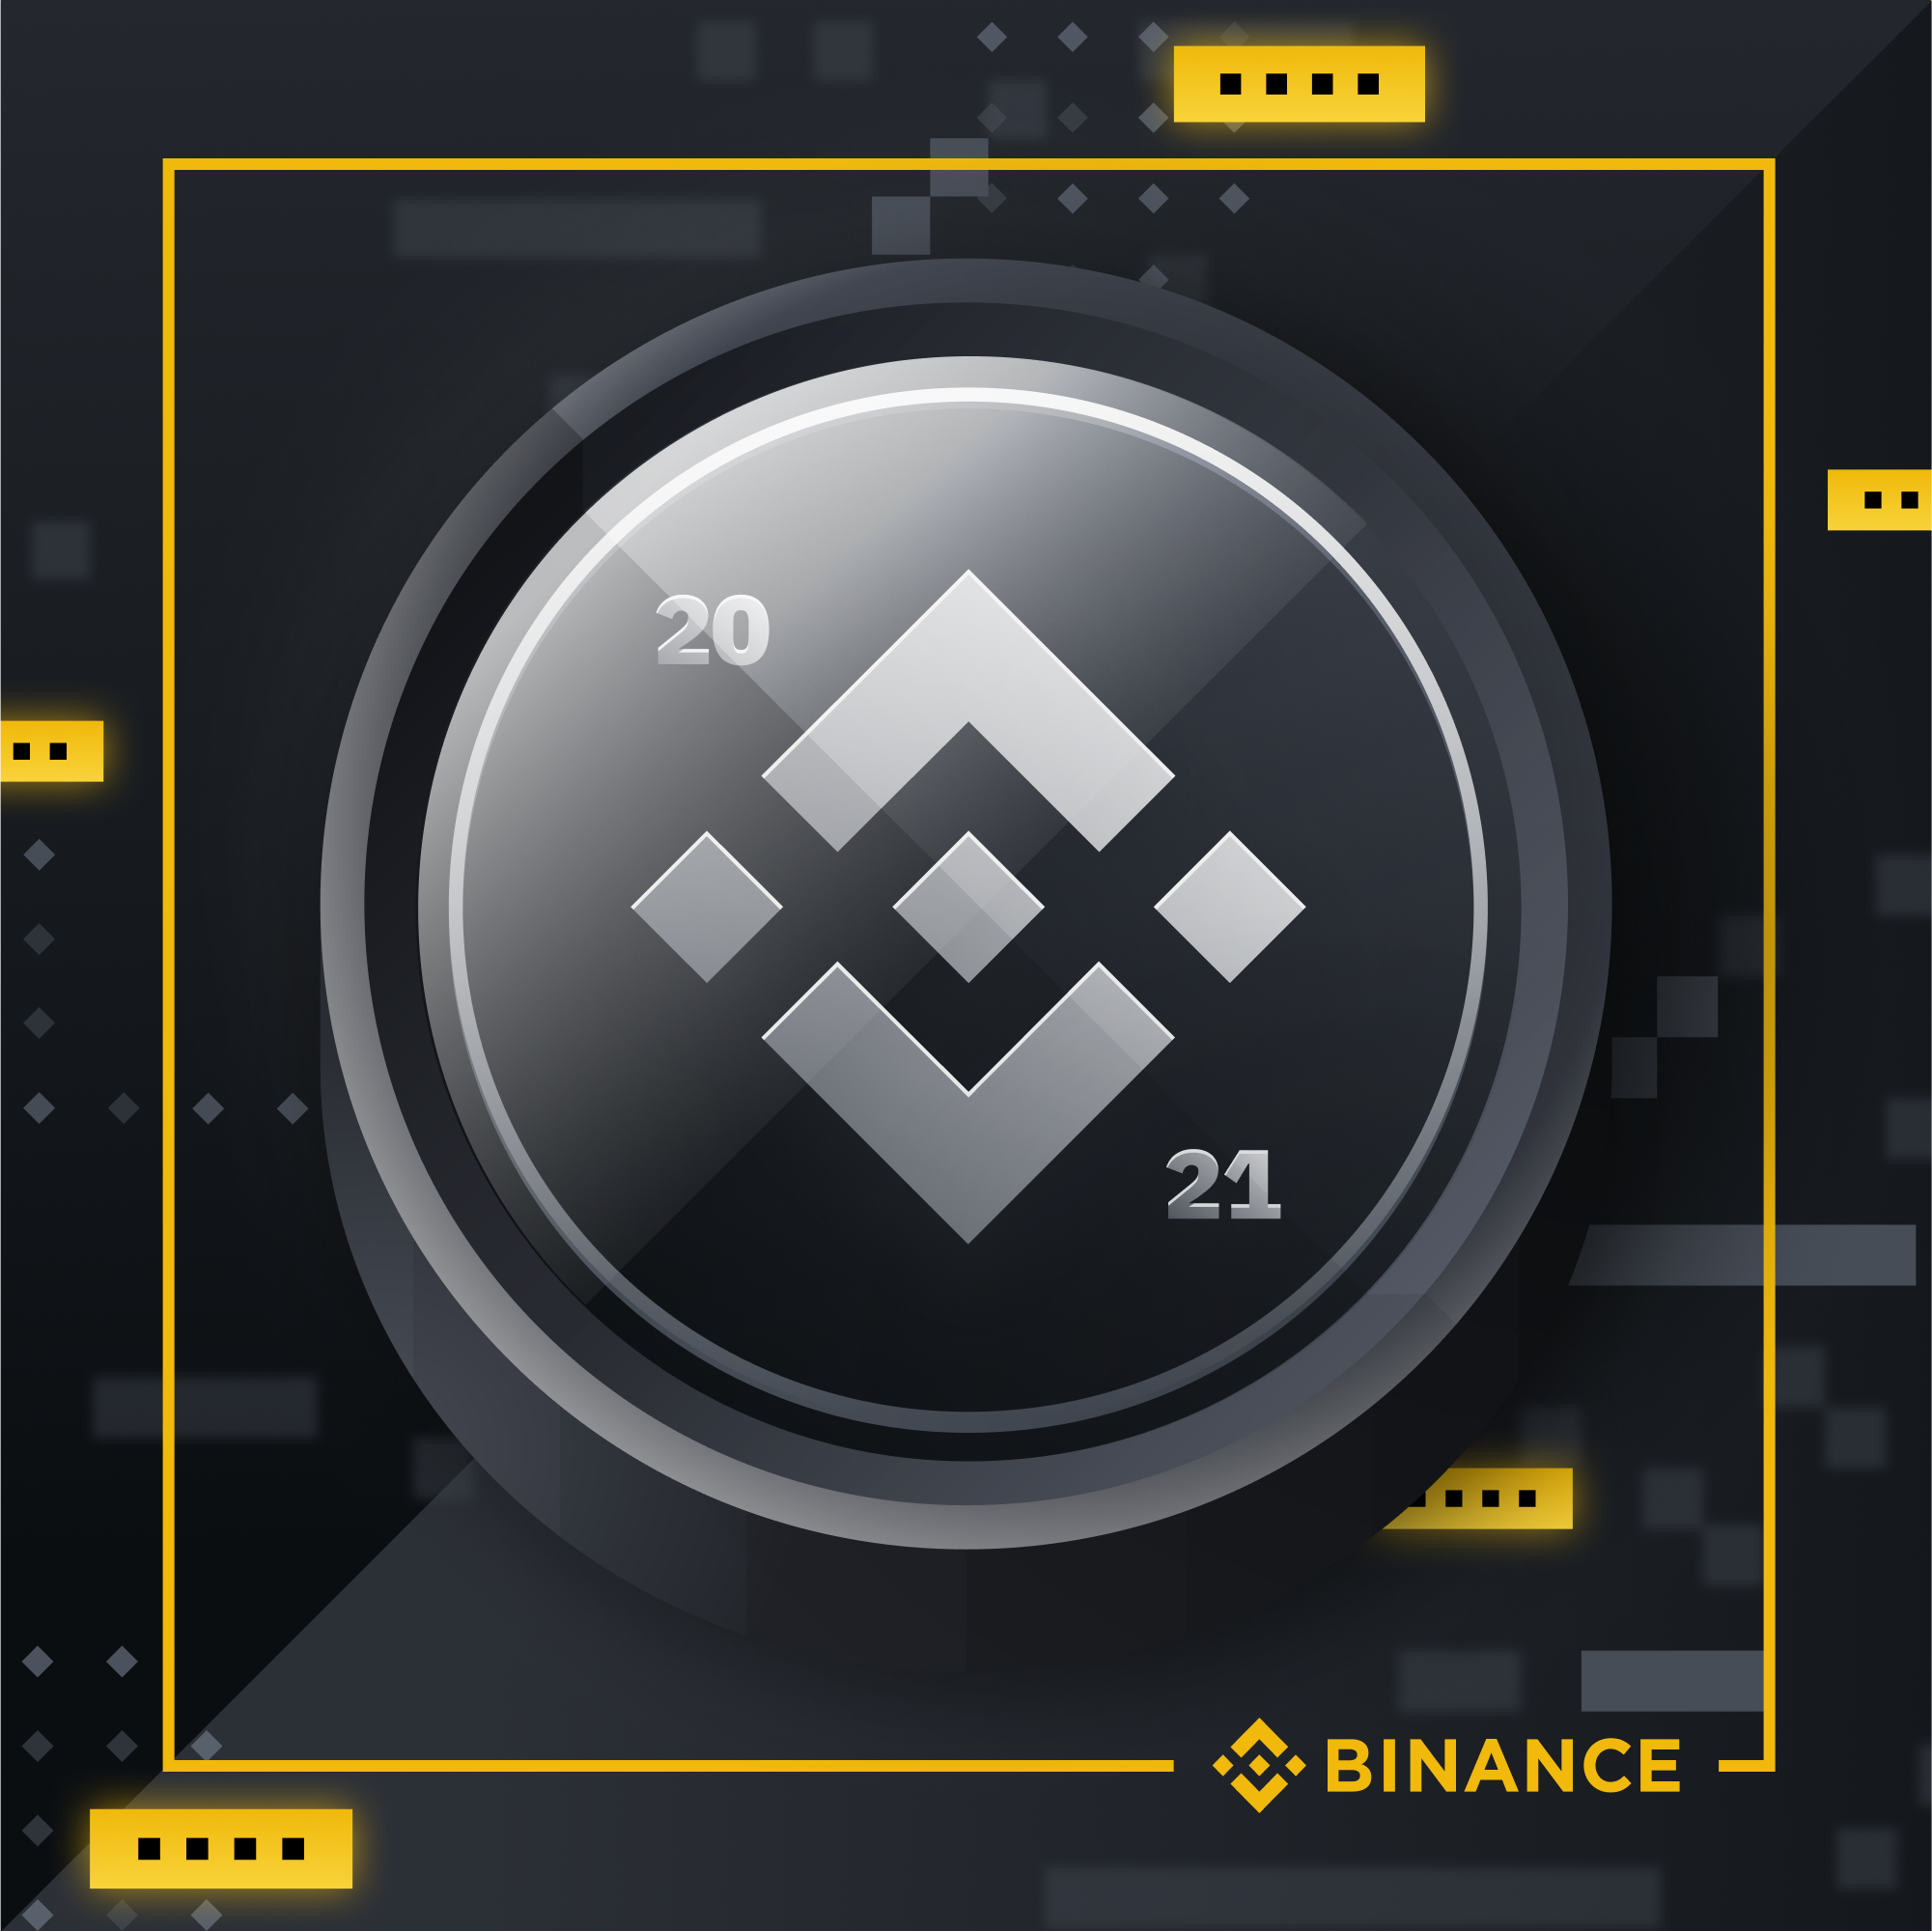 Binance NFT 2 copy